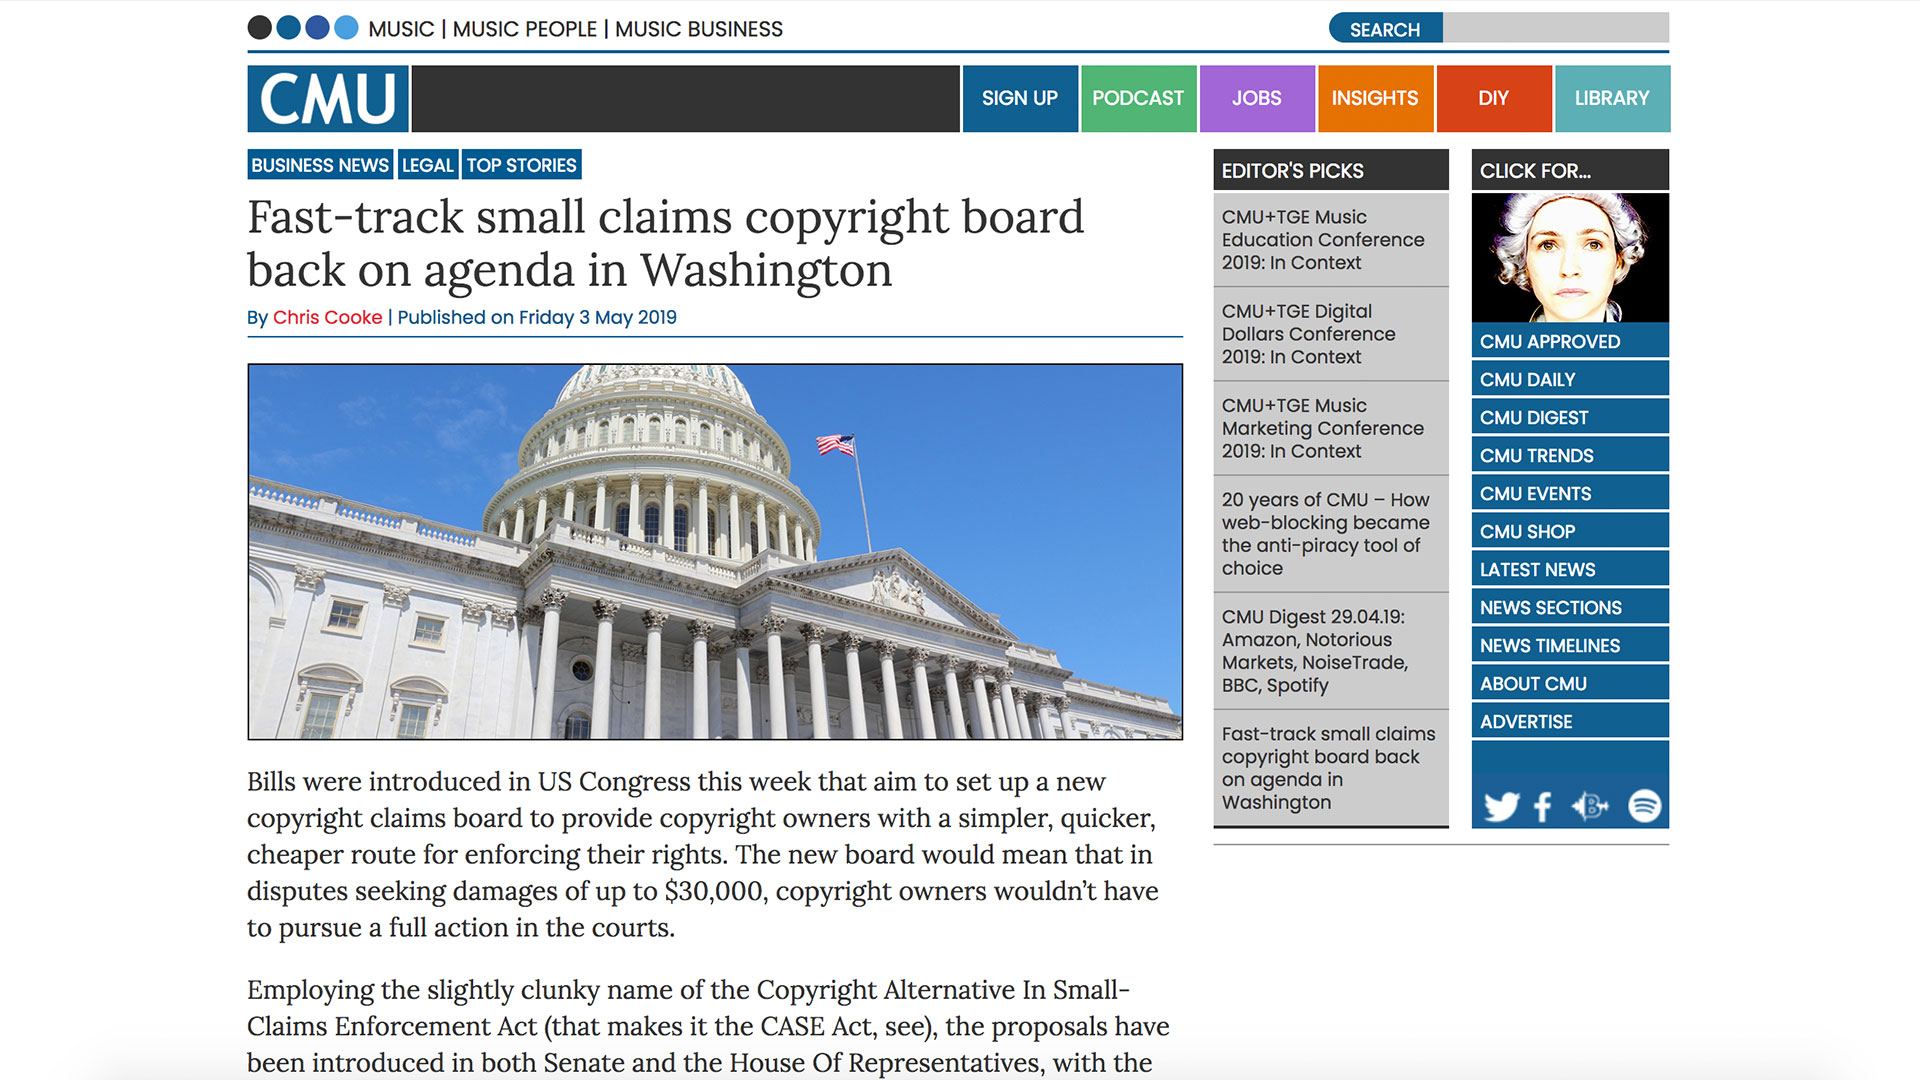 Fairness Rocks News Fast-track small claims copyright board back on agenda in Washington